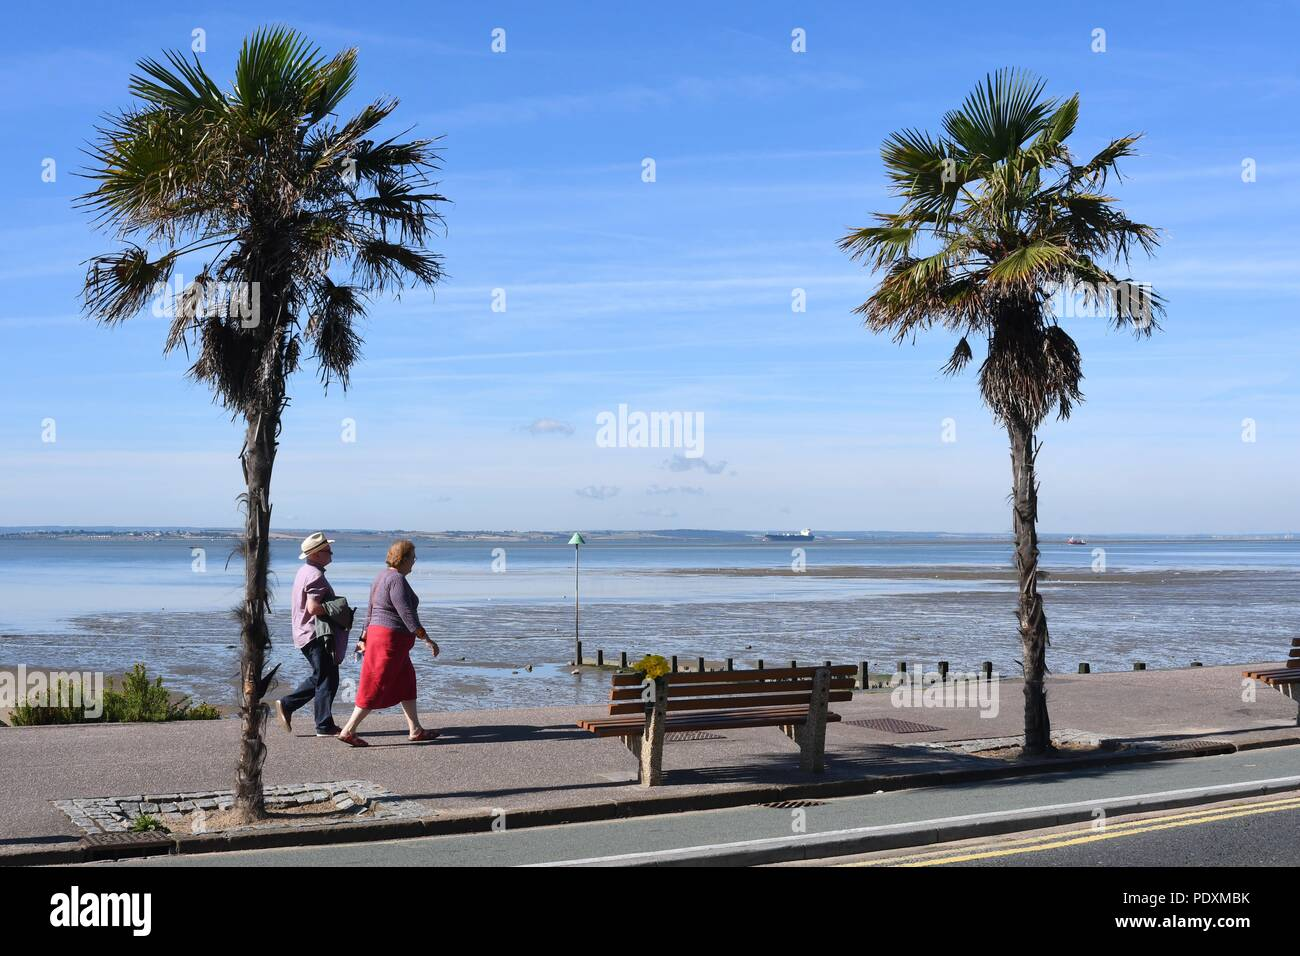 Uk Weather A Warm Start To The Day In Southend A View Of People Walking Along The Sea Front Credit Ben Rector Alamy Live News